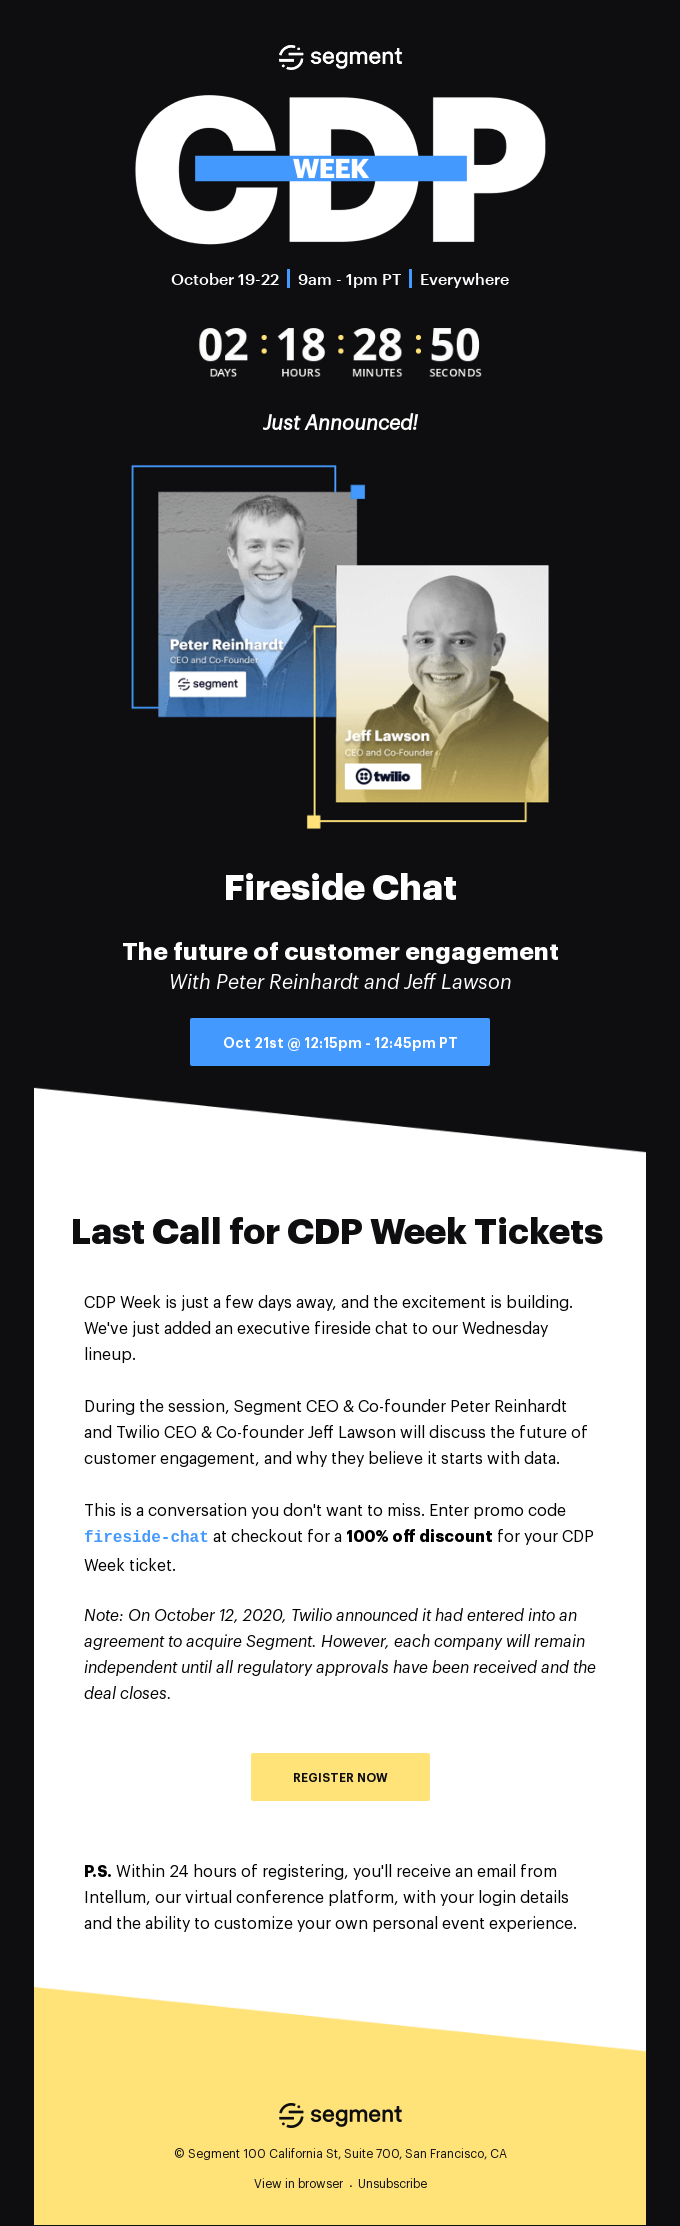 [CDP Week] Just Announced: Fireside Chat with Twilio CEO Jeff Lawson